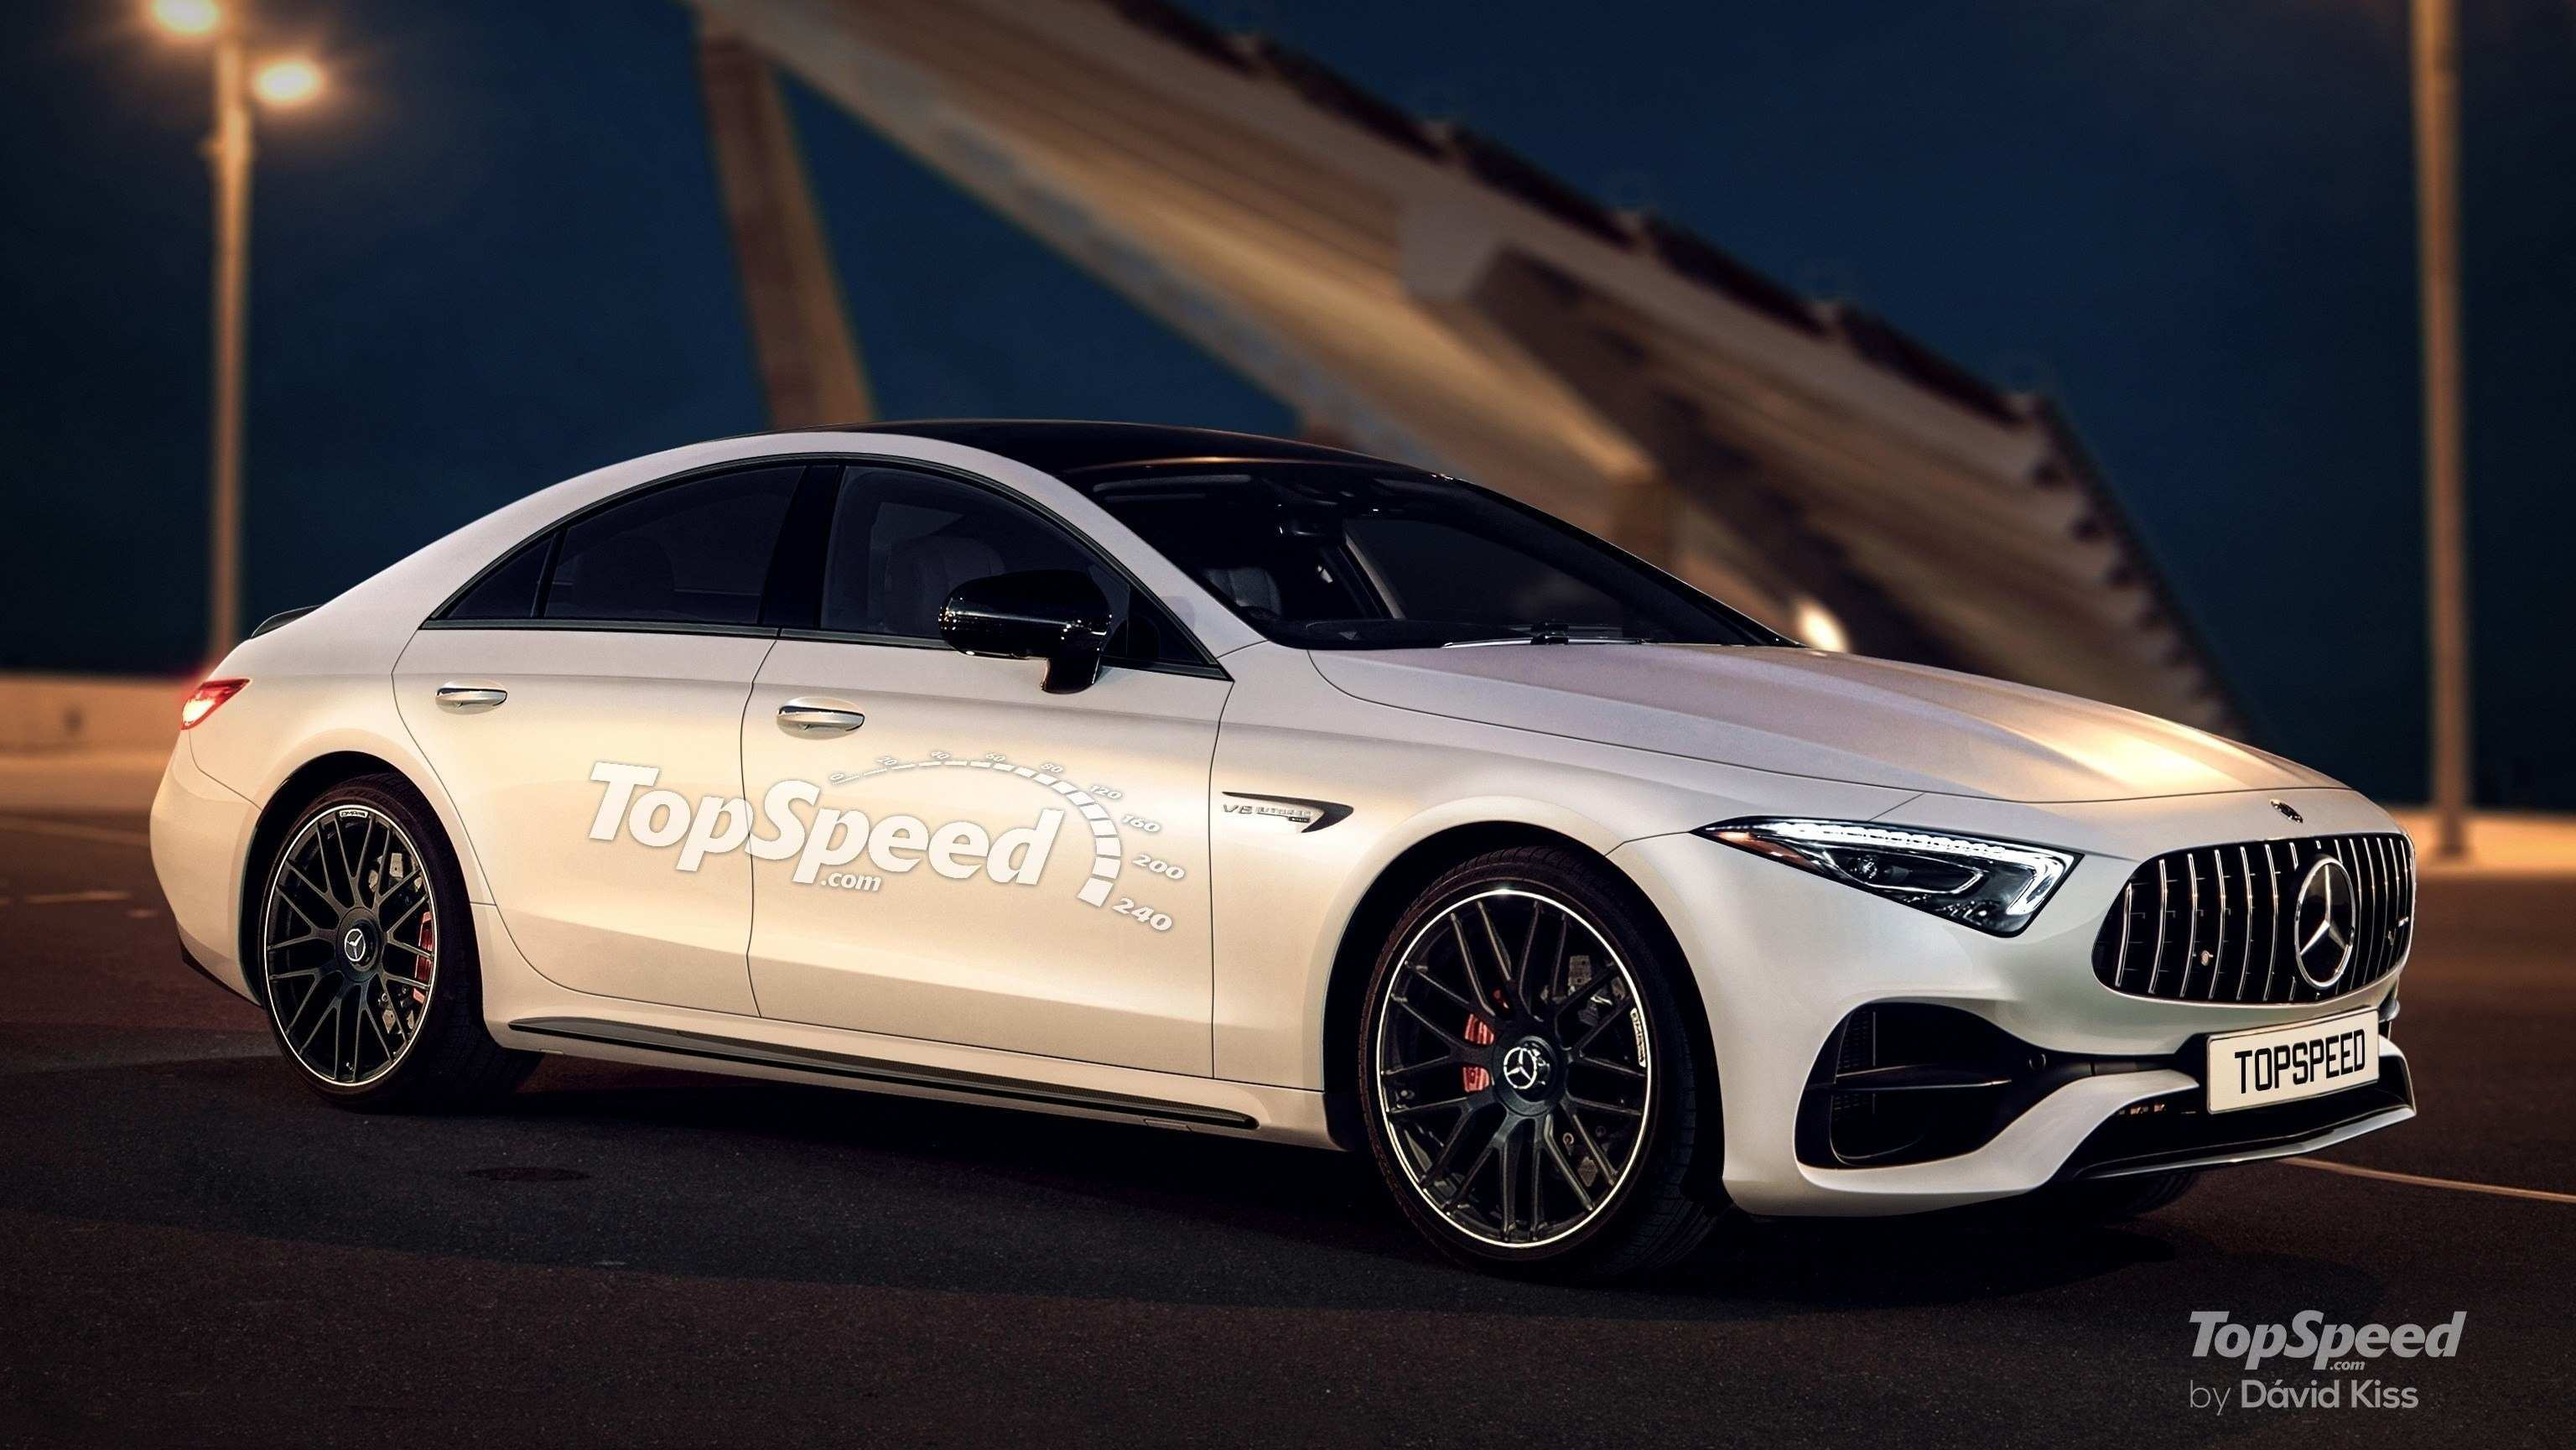 22 New Mercedes Cls 2020 Review with Mercedes Cls 2020